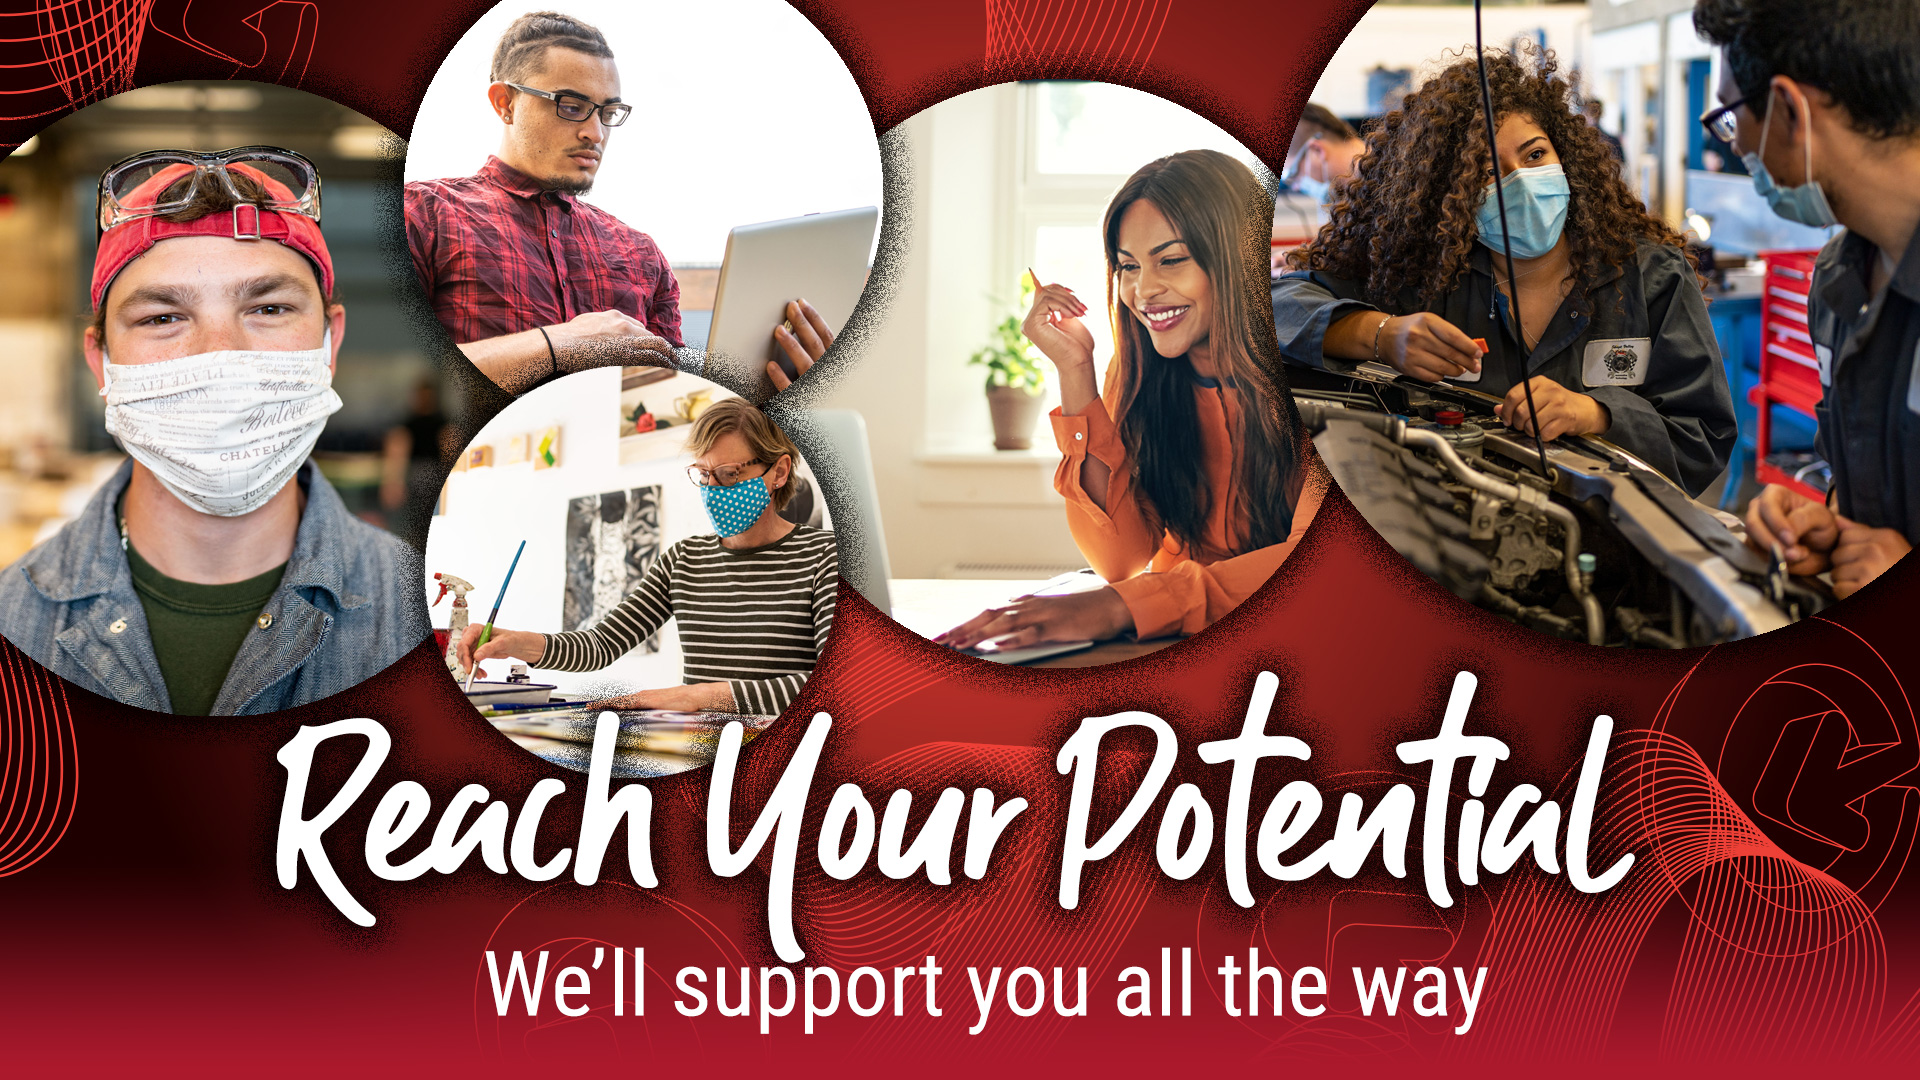 Reach Your Potential at Skagit Valley College! We'll support you all the way. Visit our Winter Quarter Information page to learn more.